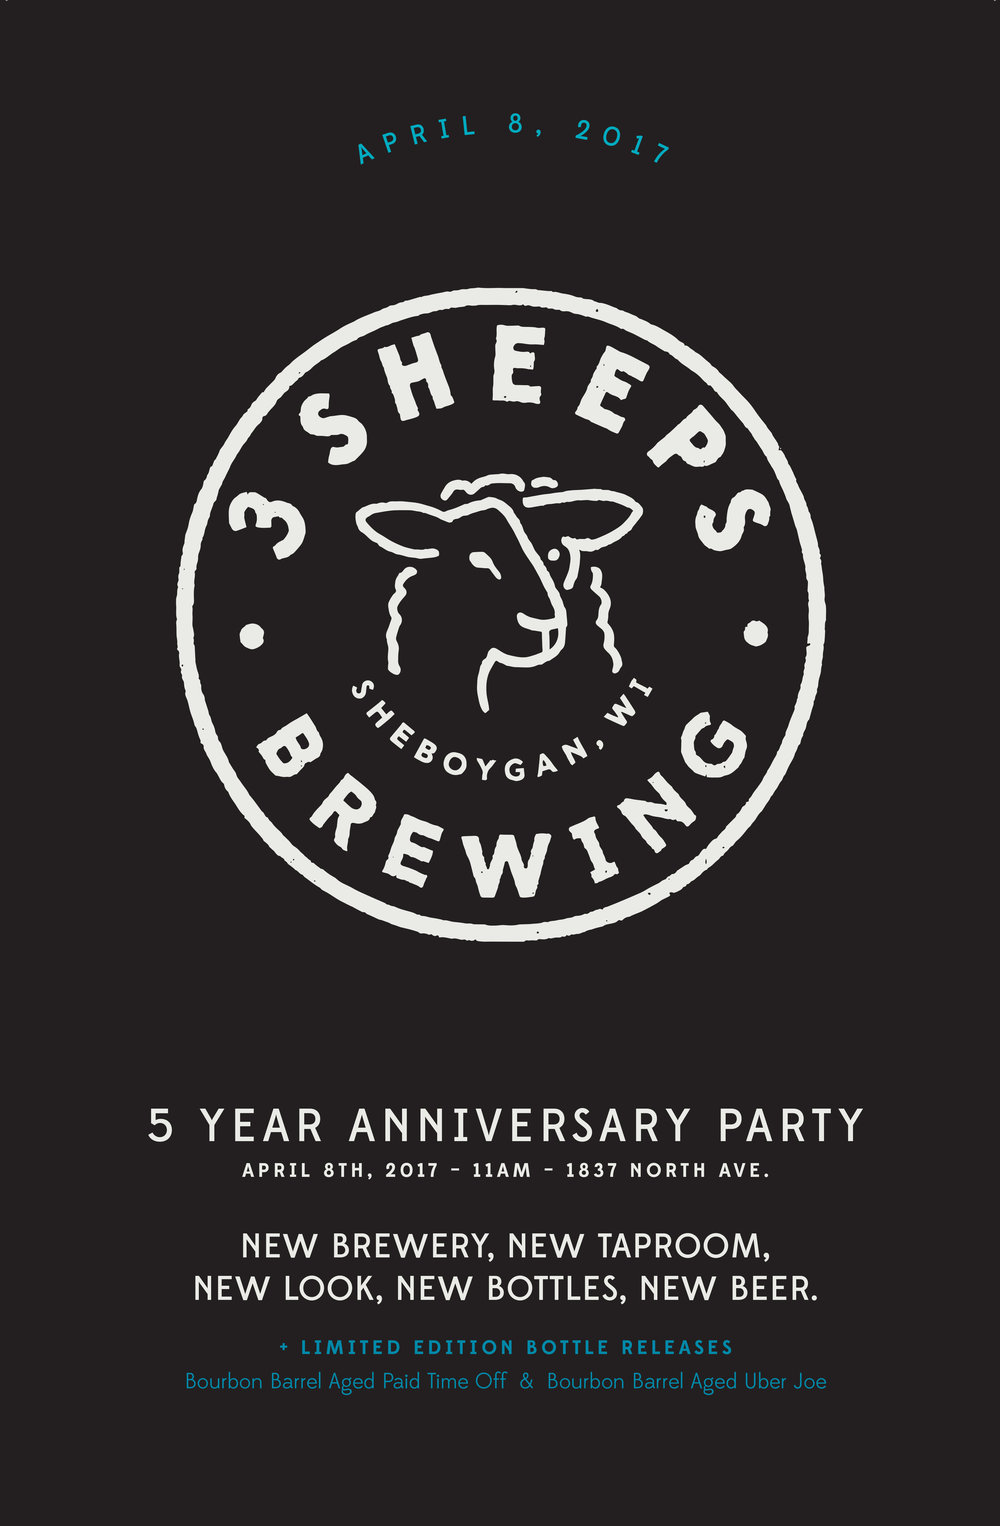 3 Sheeps Brewing Poster Design